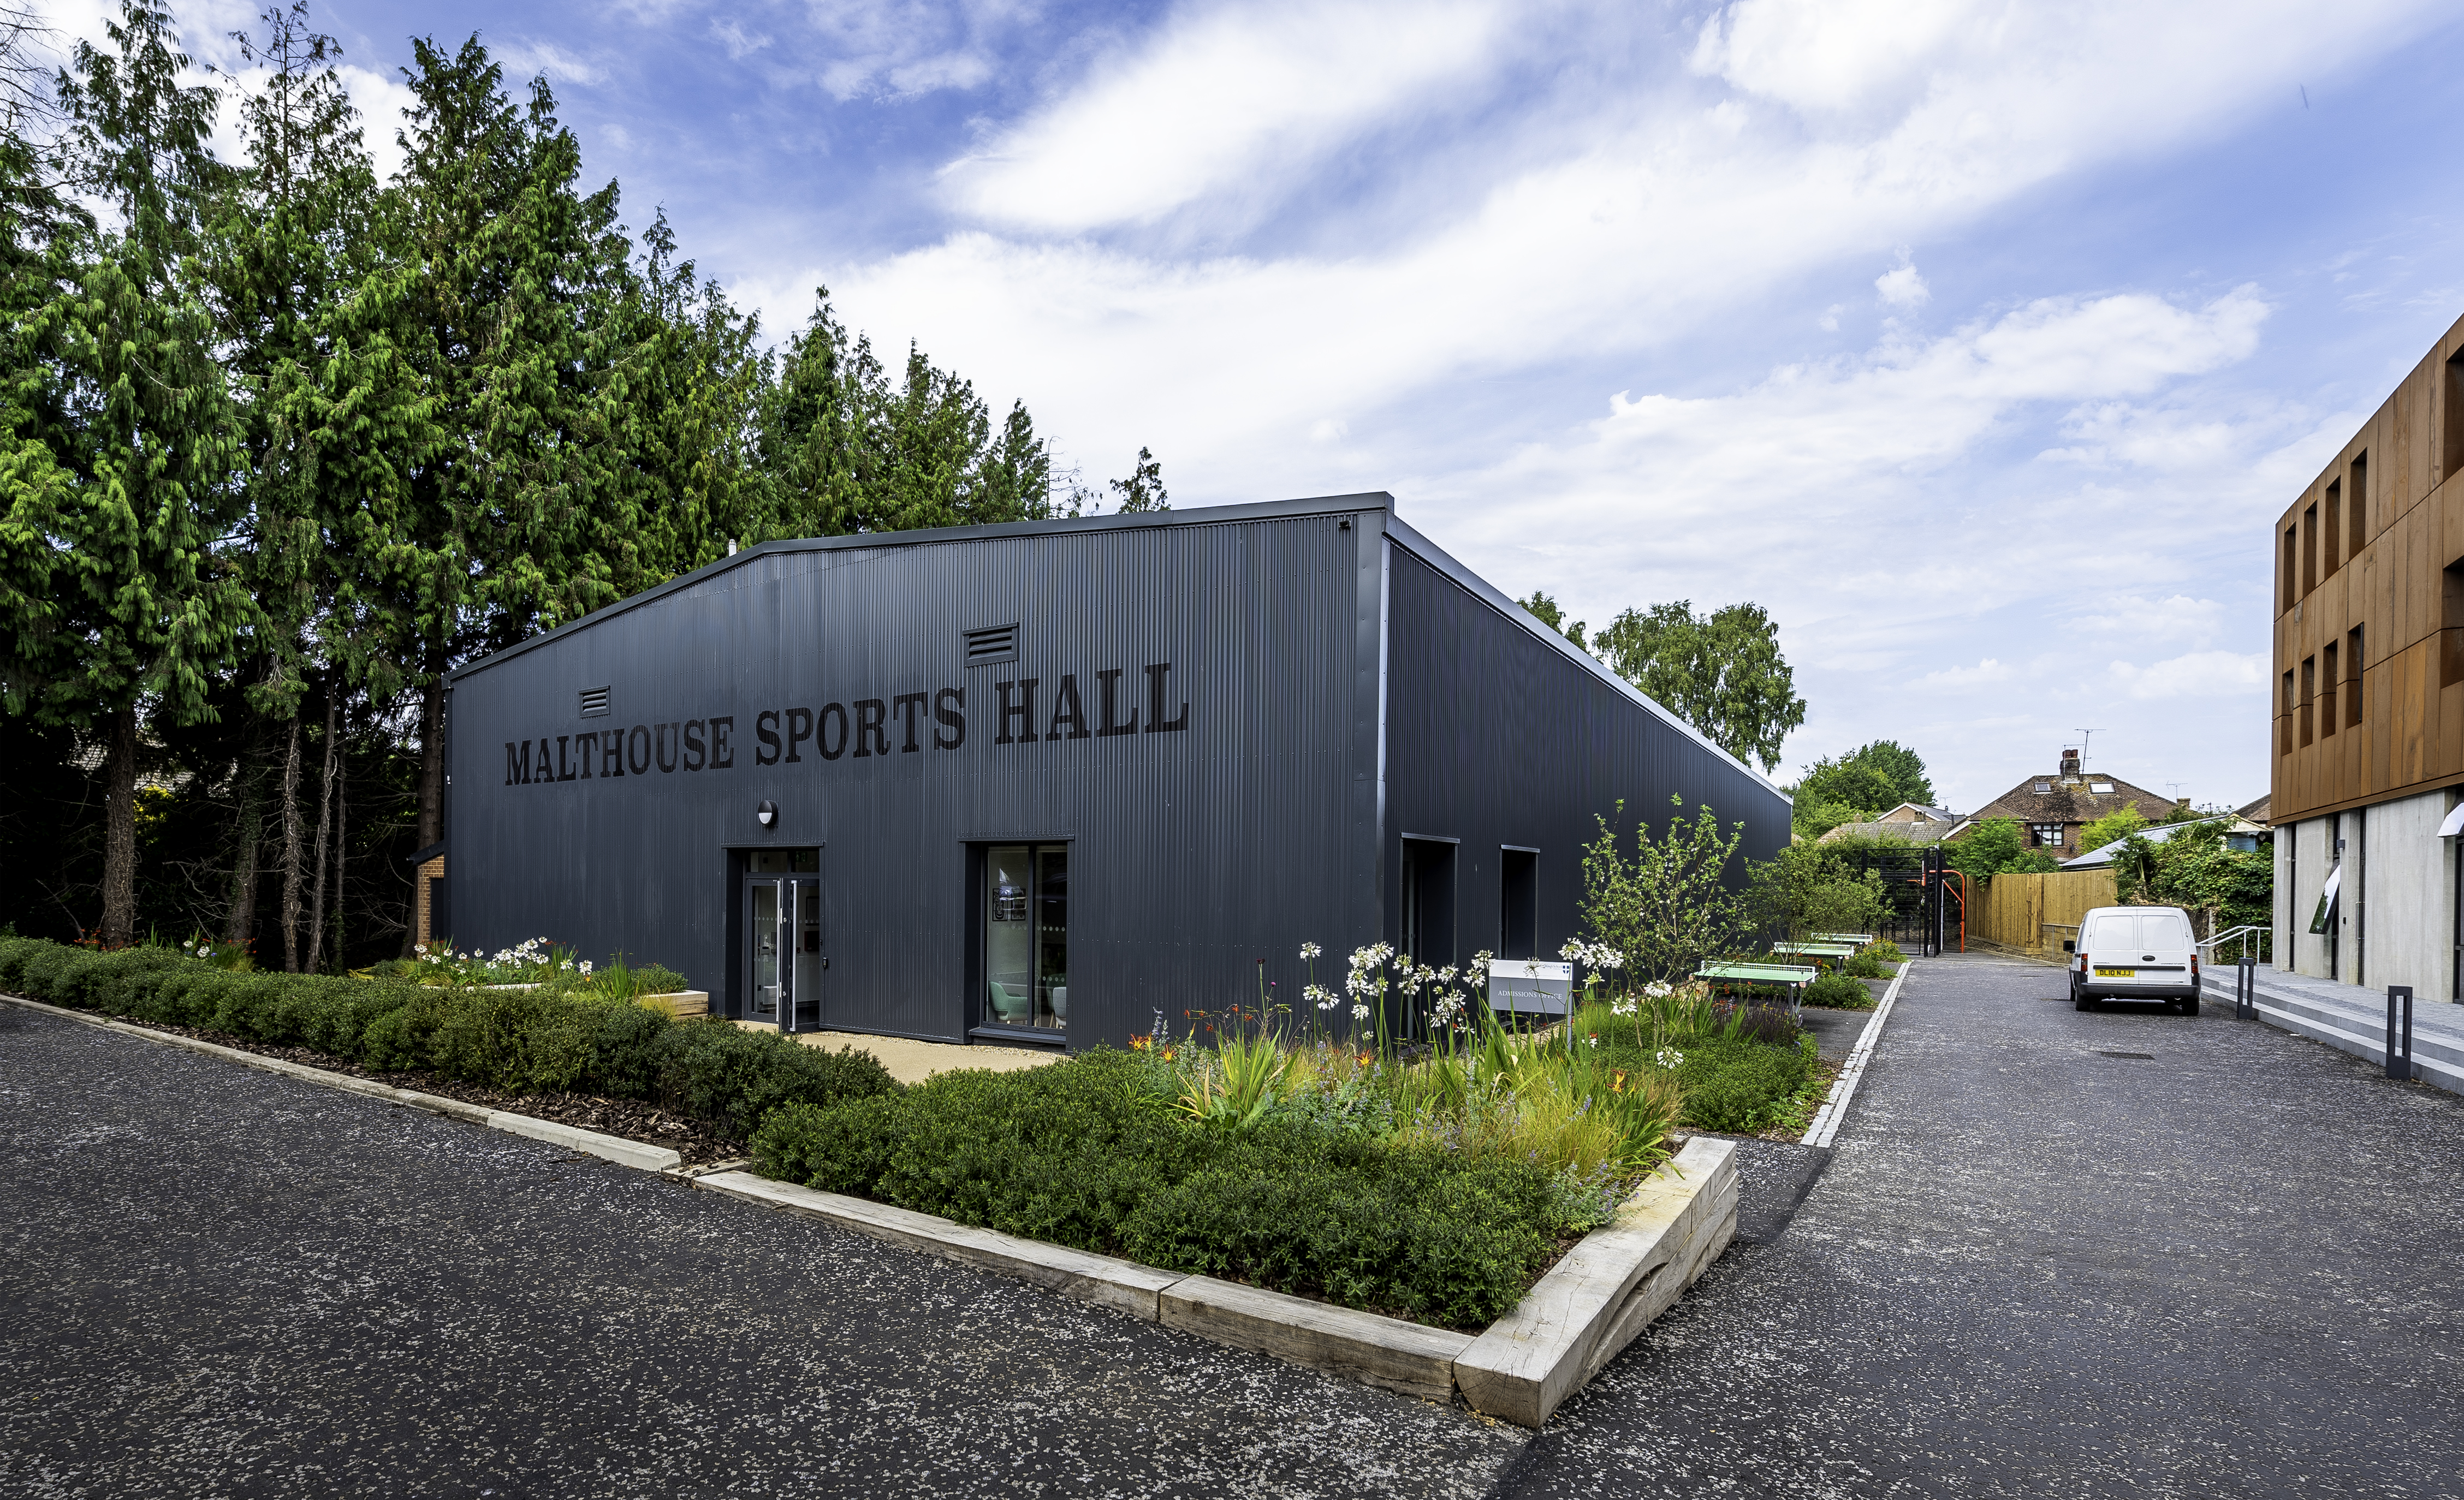 The Malthouse Sports Centre